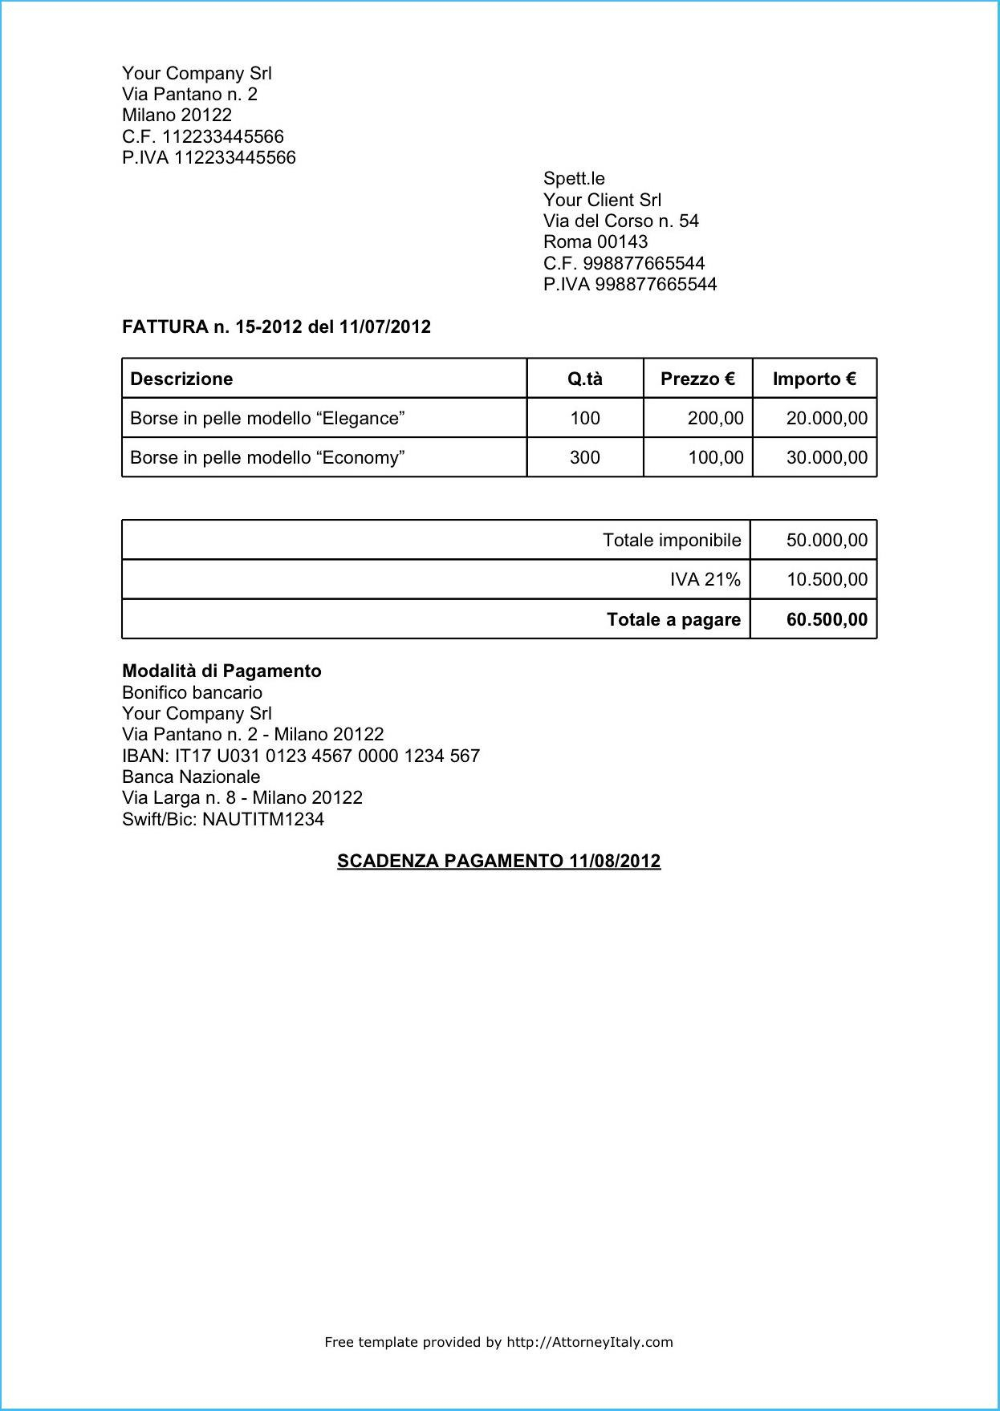 Written Invoice Template With Regard To Written Invoice Template 10 Professional Templates Id Invoice Template Invoice Template Word Invoice Design Template